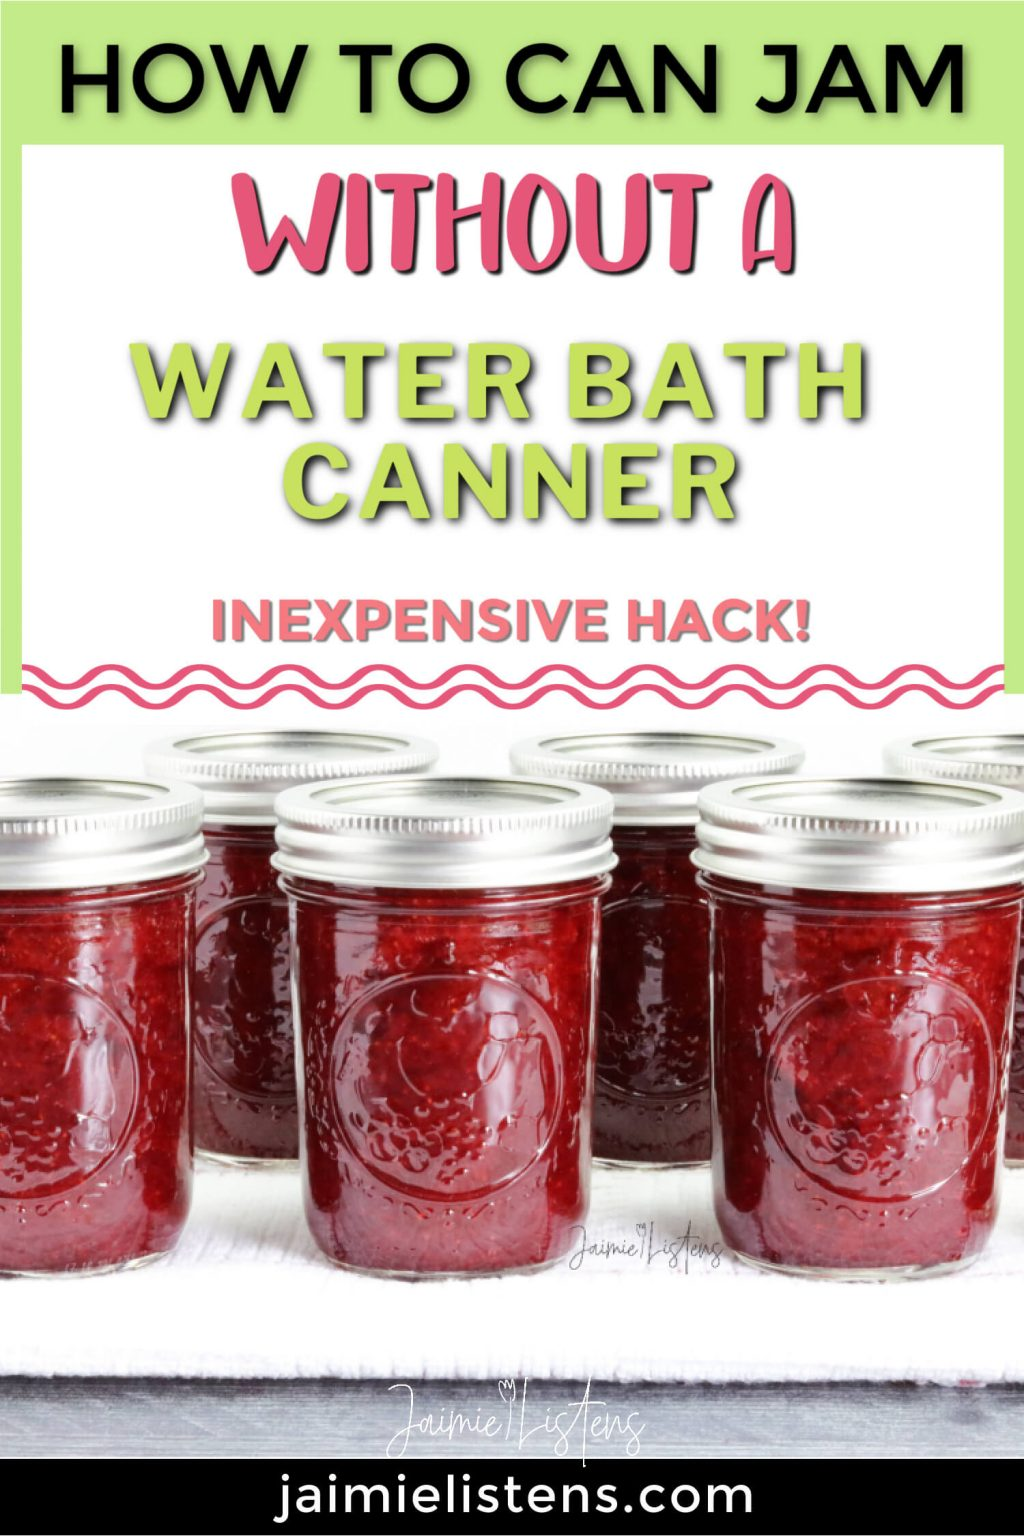 How to Can Jam Without a Waterbath Canner - Jaimie Listens: If you want to can jam and don't have a canner, here's how you do it. lncludes an easy materials list.